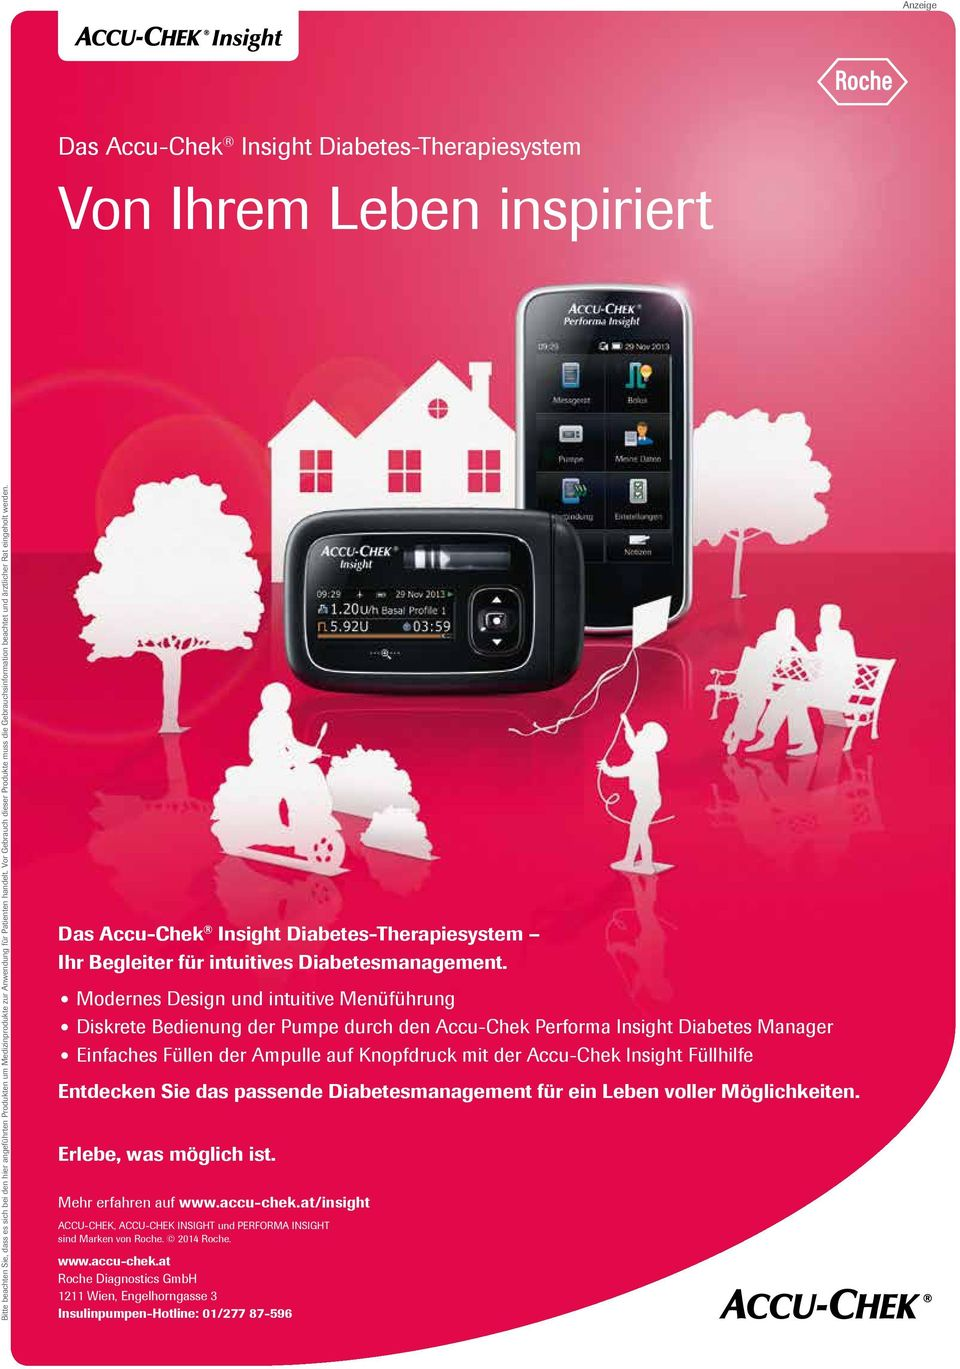 Das Accu-Chek Insight Diabetes-Therapiesystem Ihr Begleiter für intuitives Diabetesmanagement.